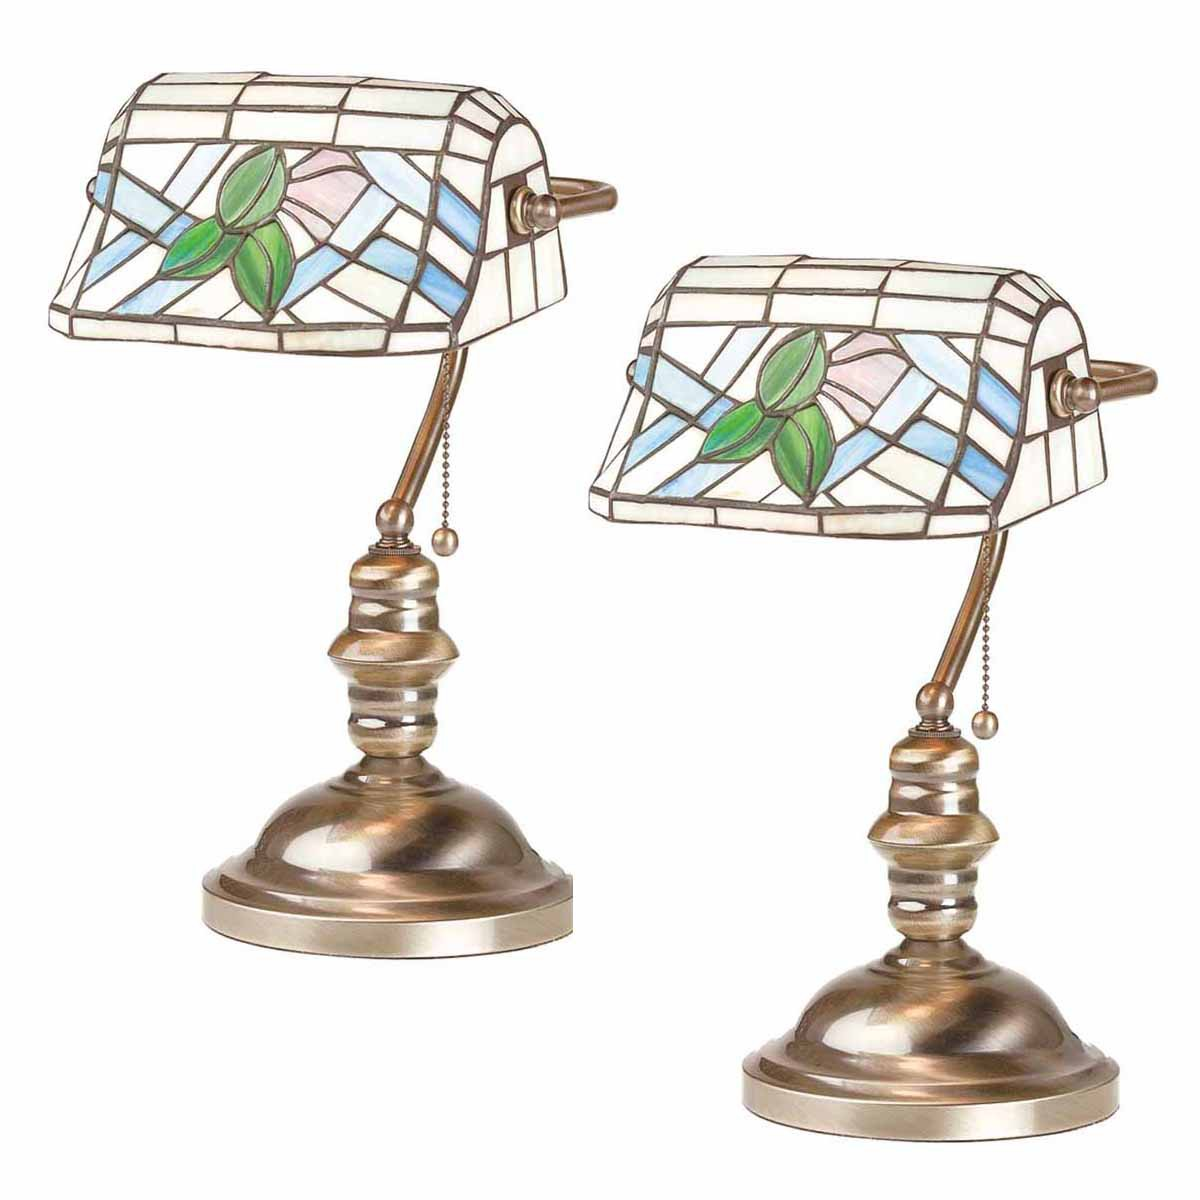 2 Banker's Lamps Stained Glass Antique Brass Set of 2 | R...